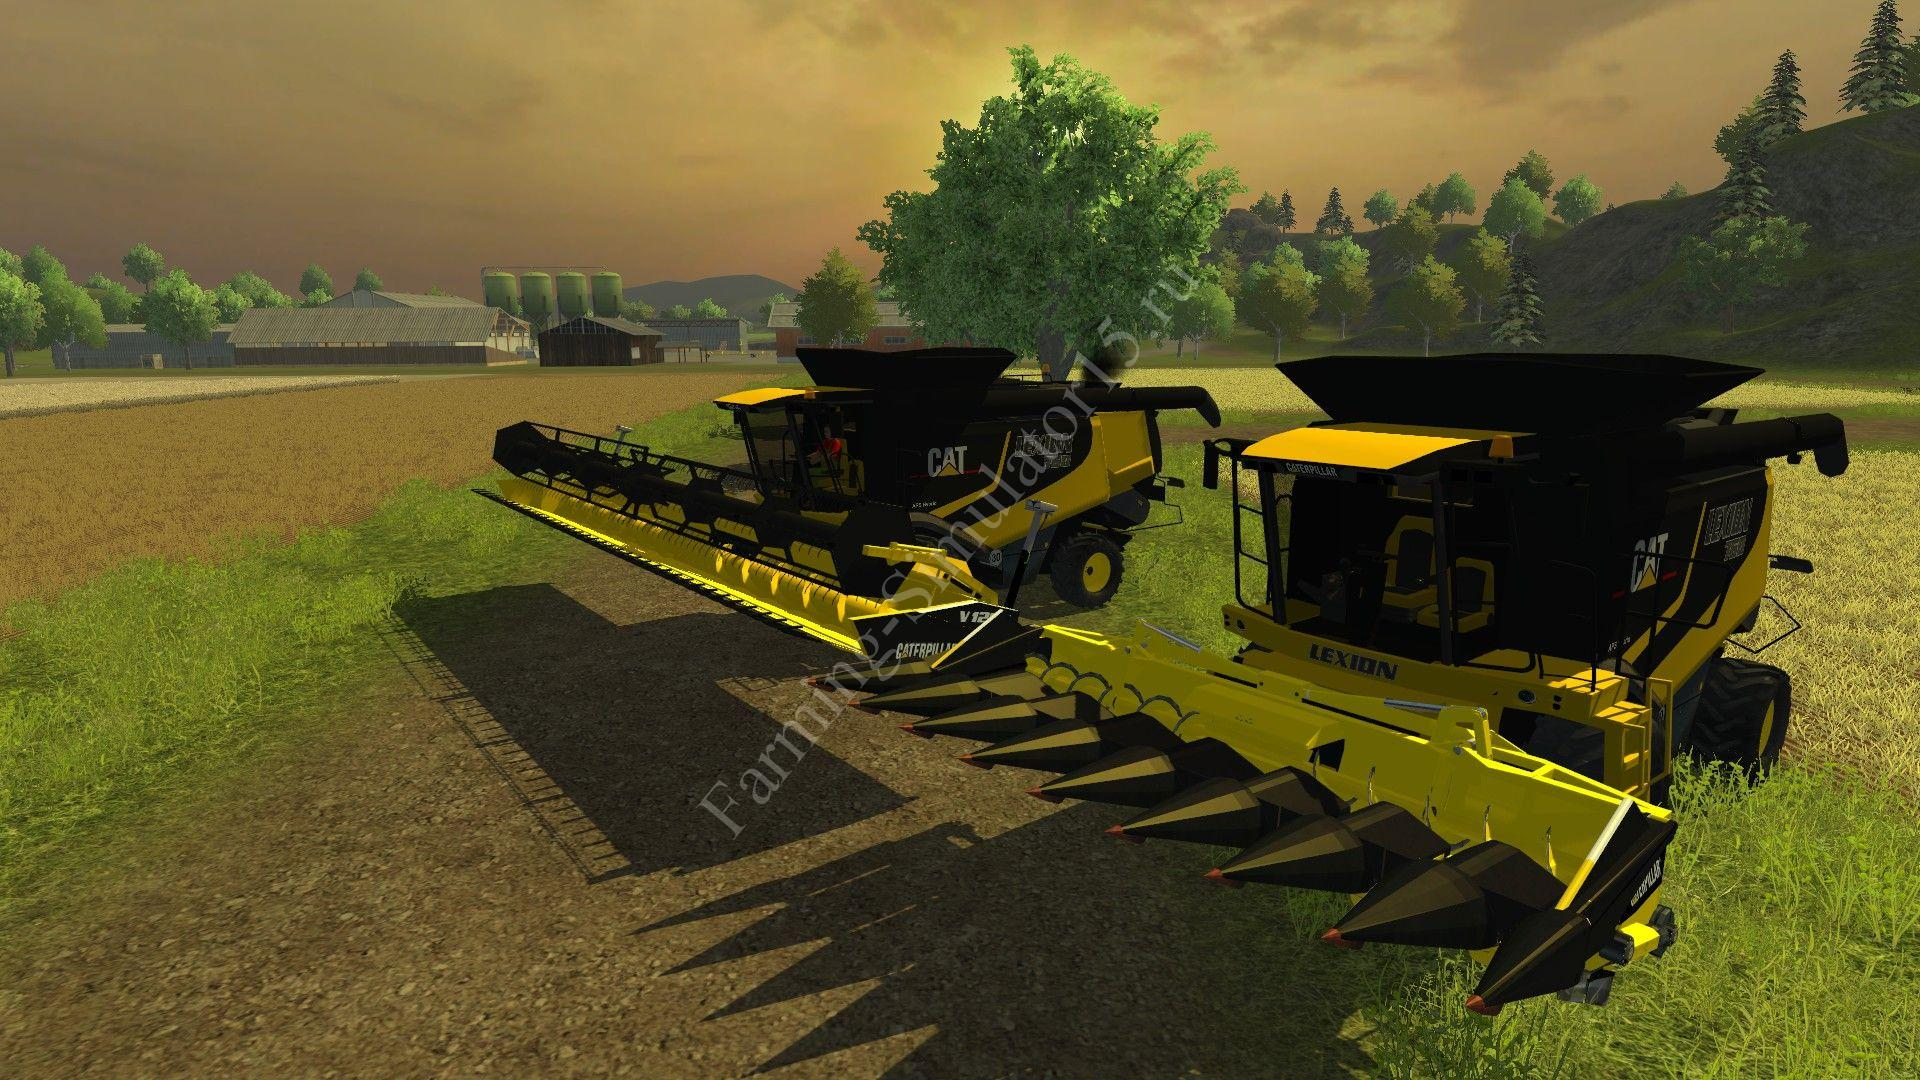 Мод комбайна Cat Lexion 760 Farming Simulator 2013, Farming Simulator 13